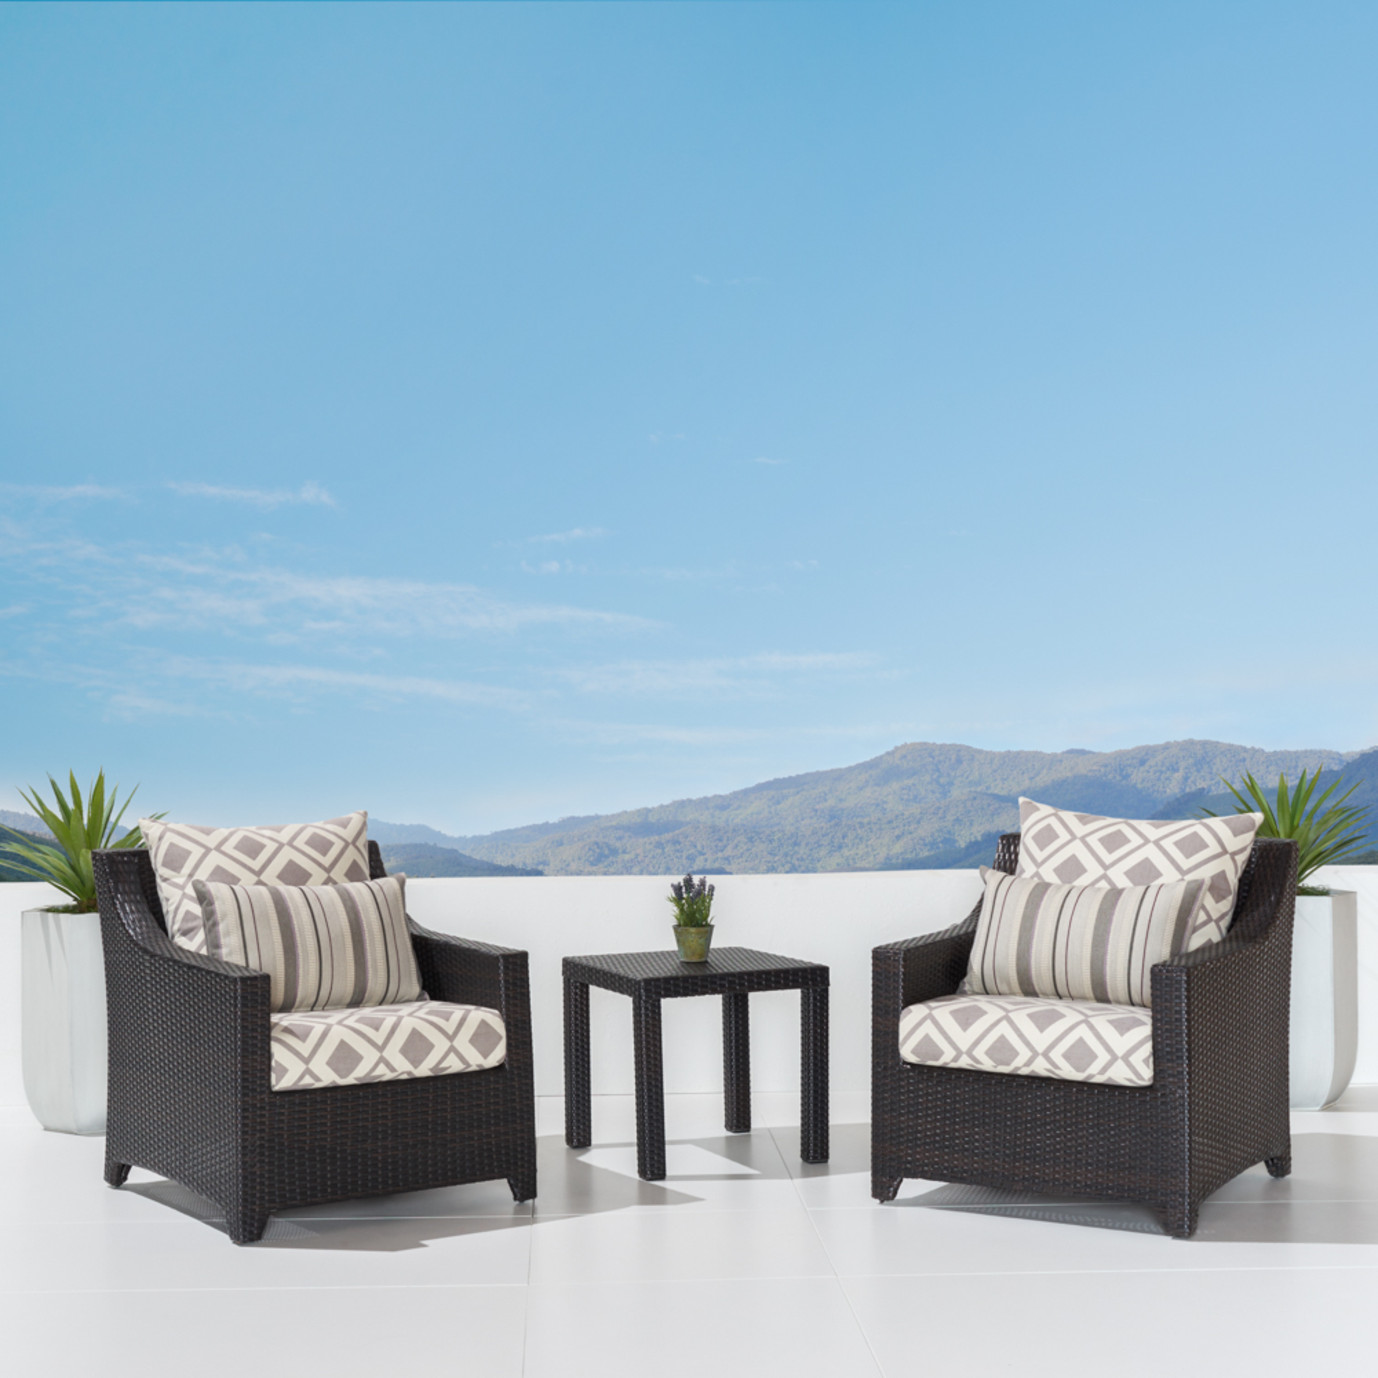 Deco™ Club Chairs & Side Table - Wisteria Lavender